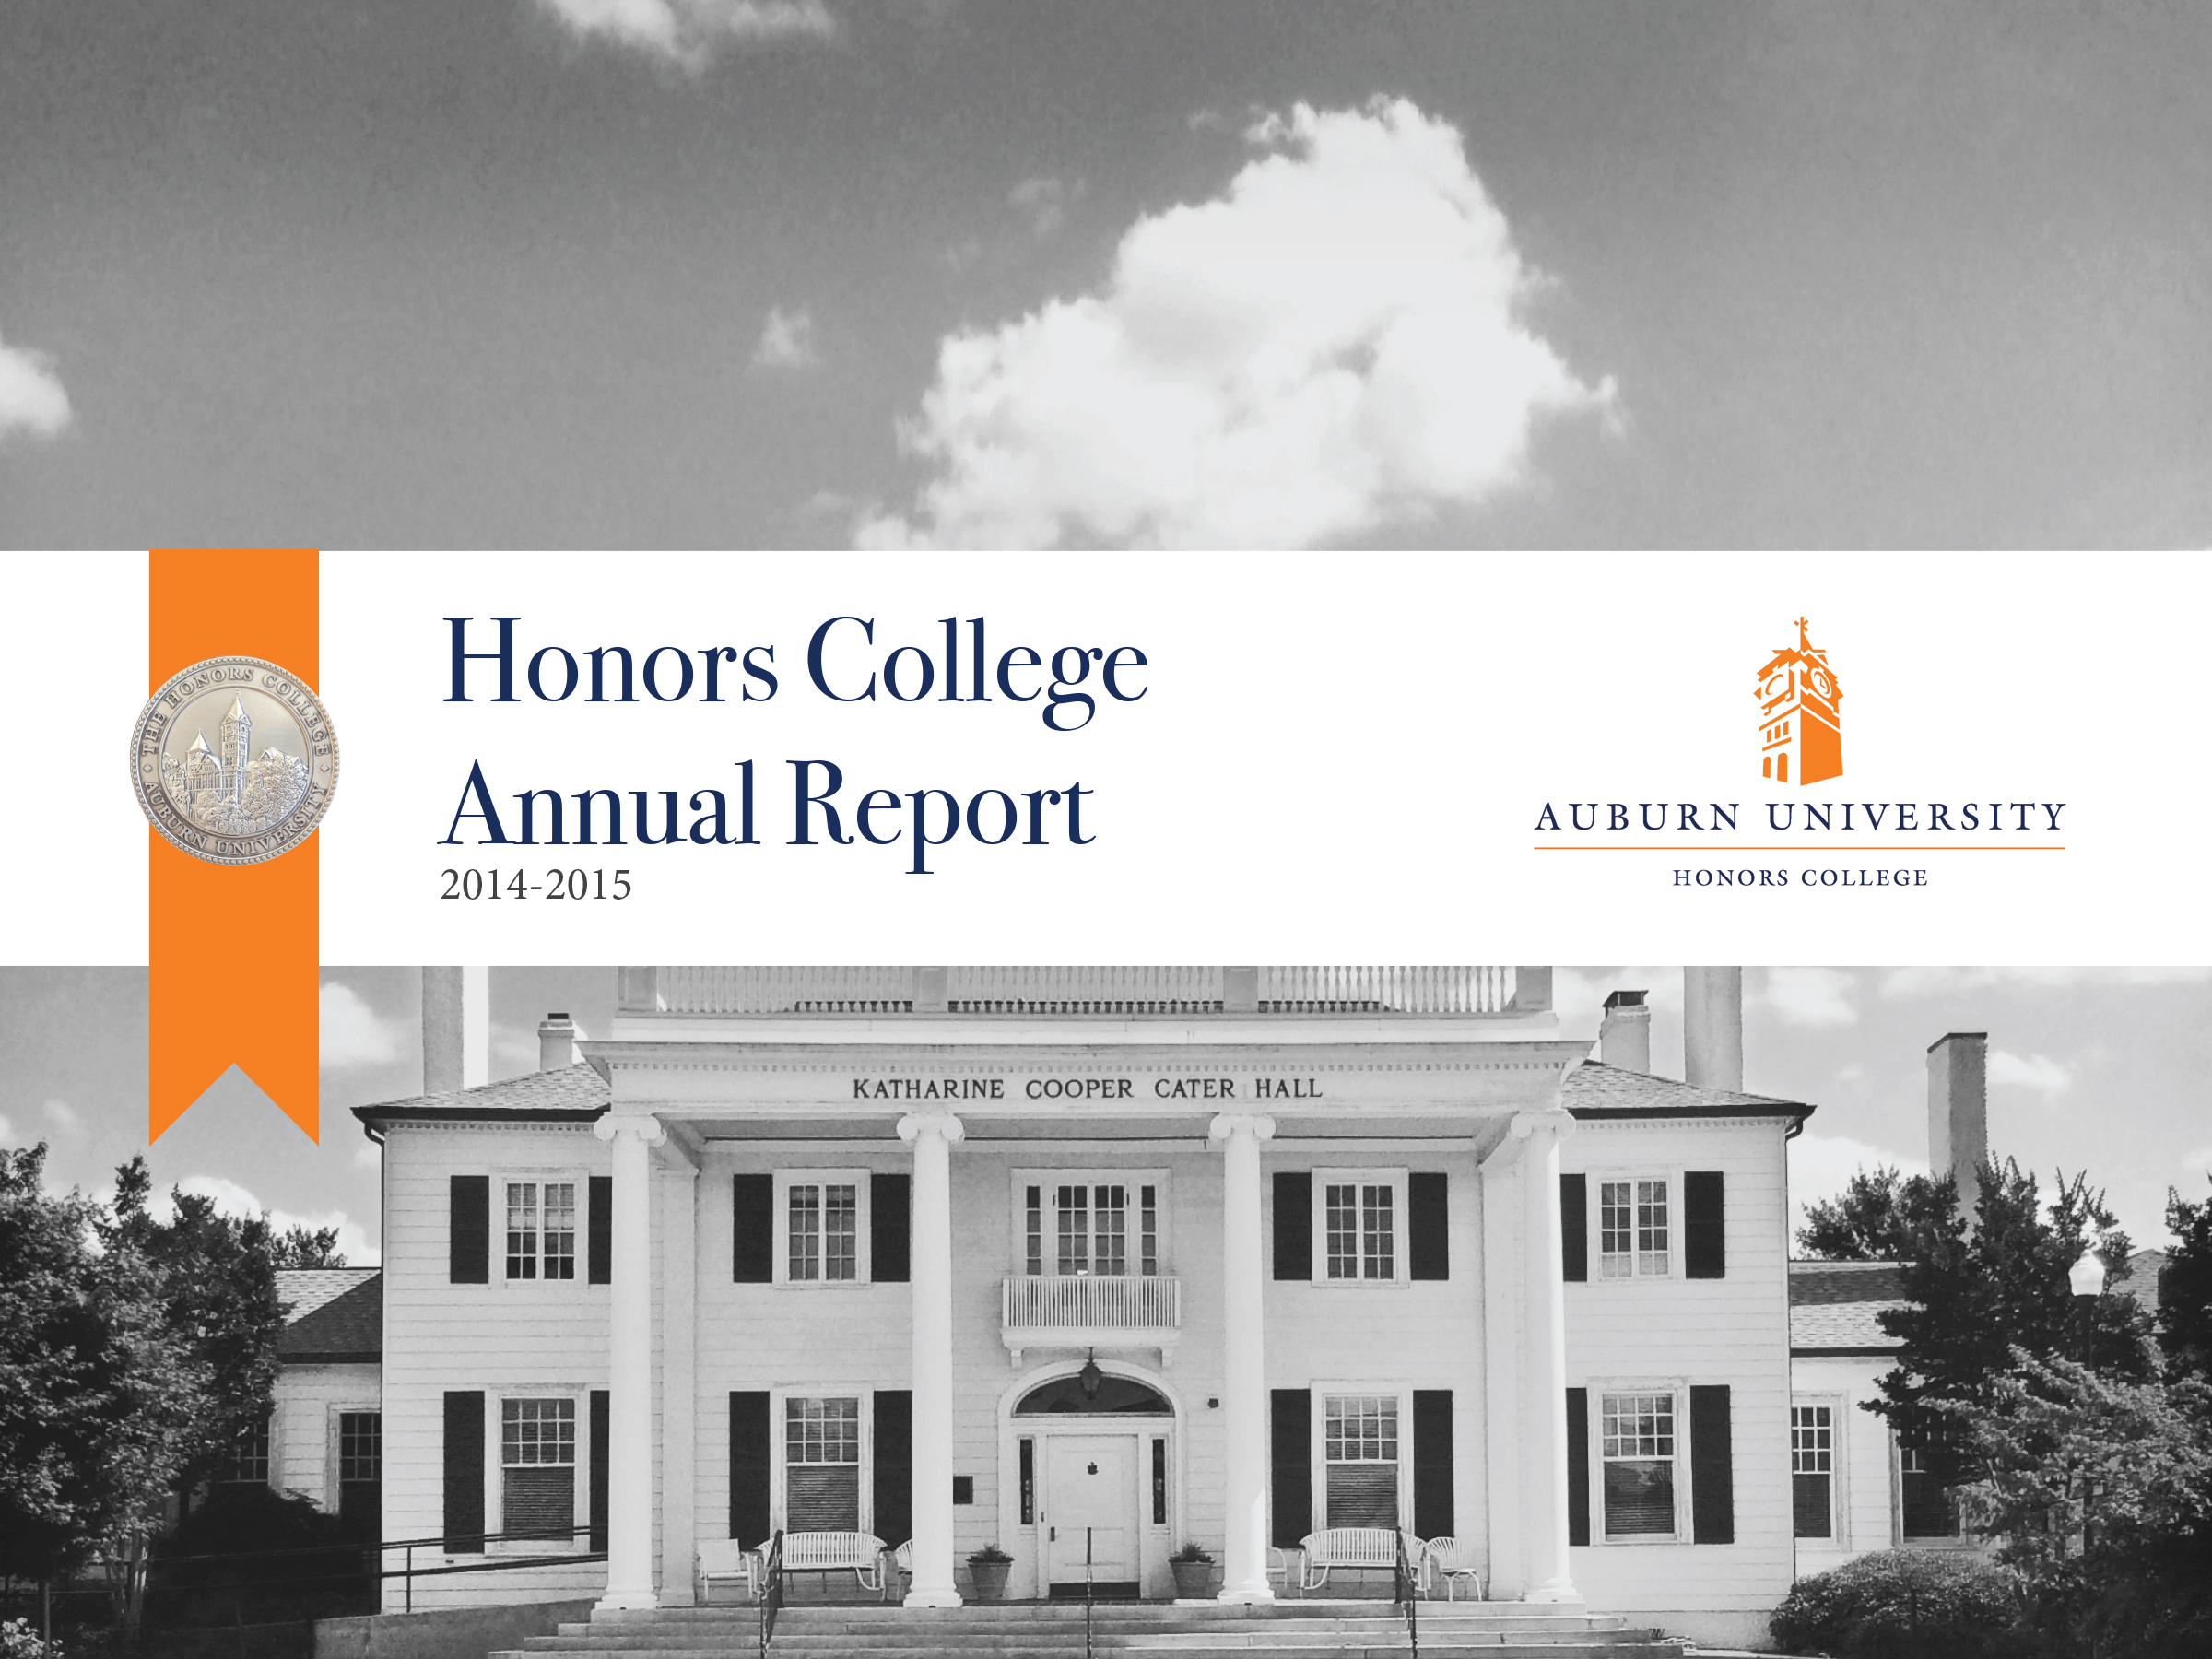 Cover of the 2014-2015 Annual Report